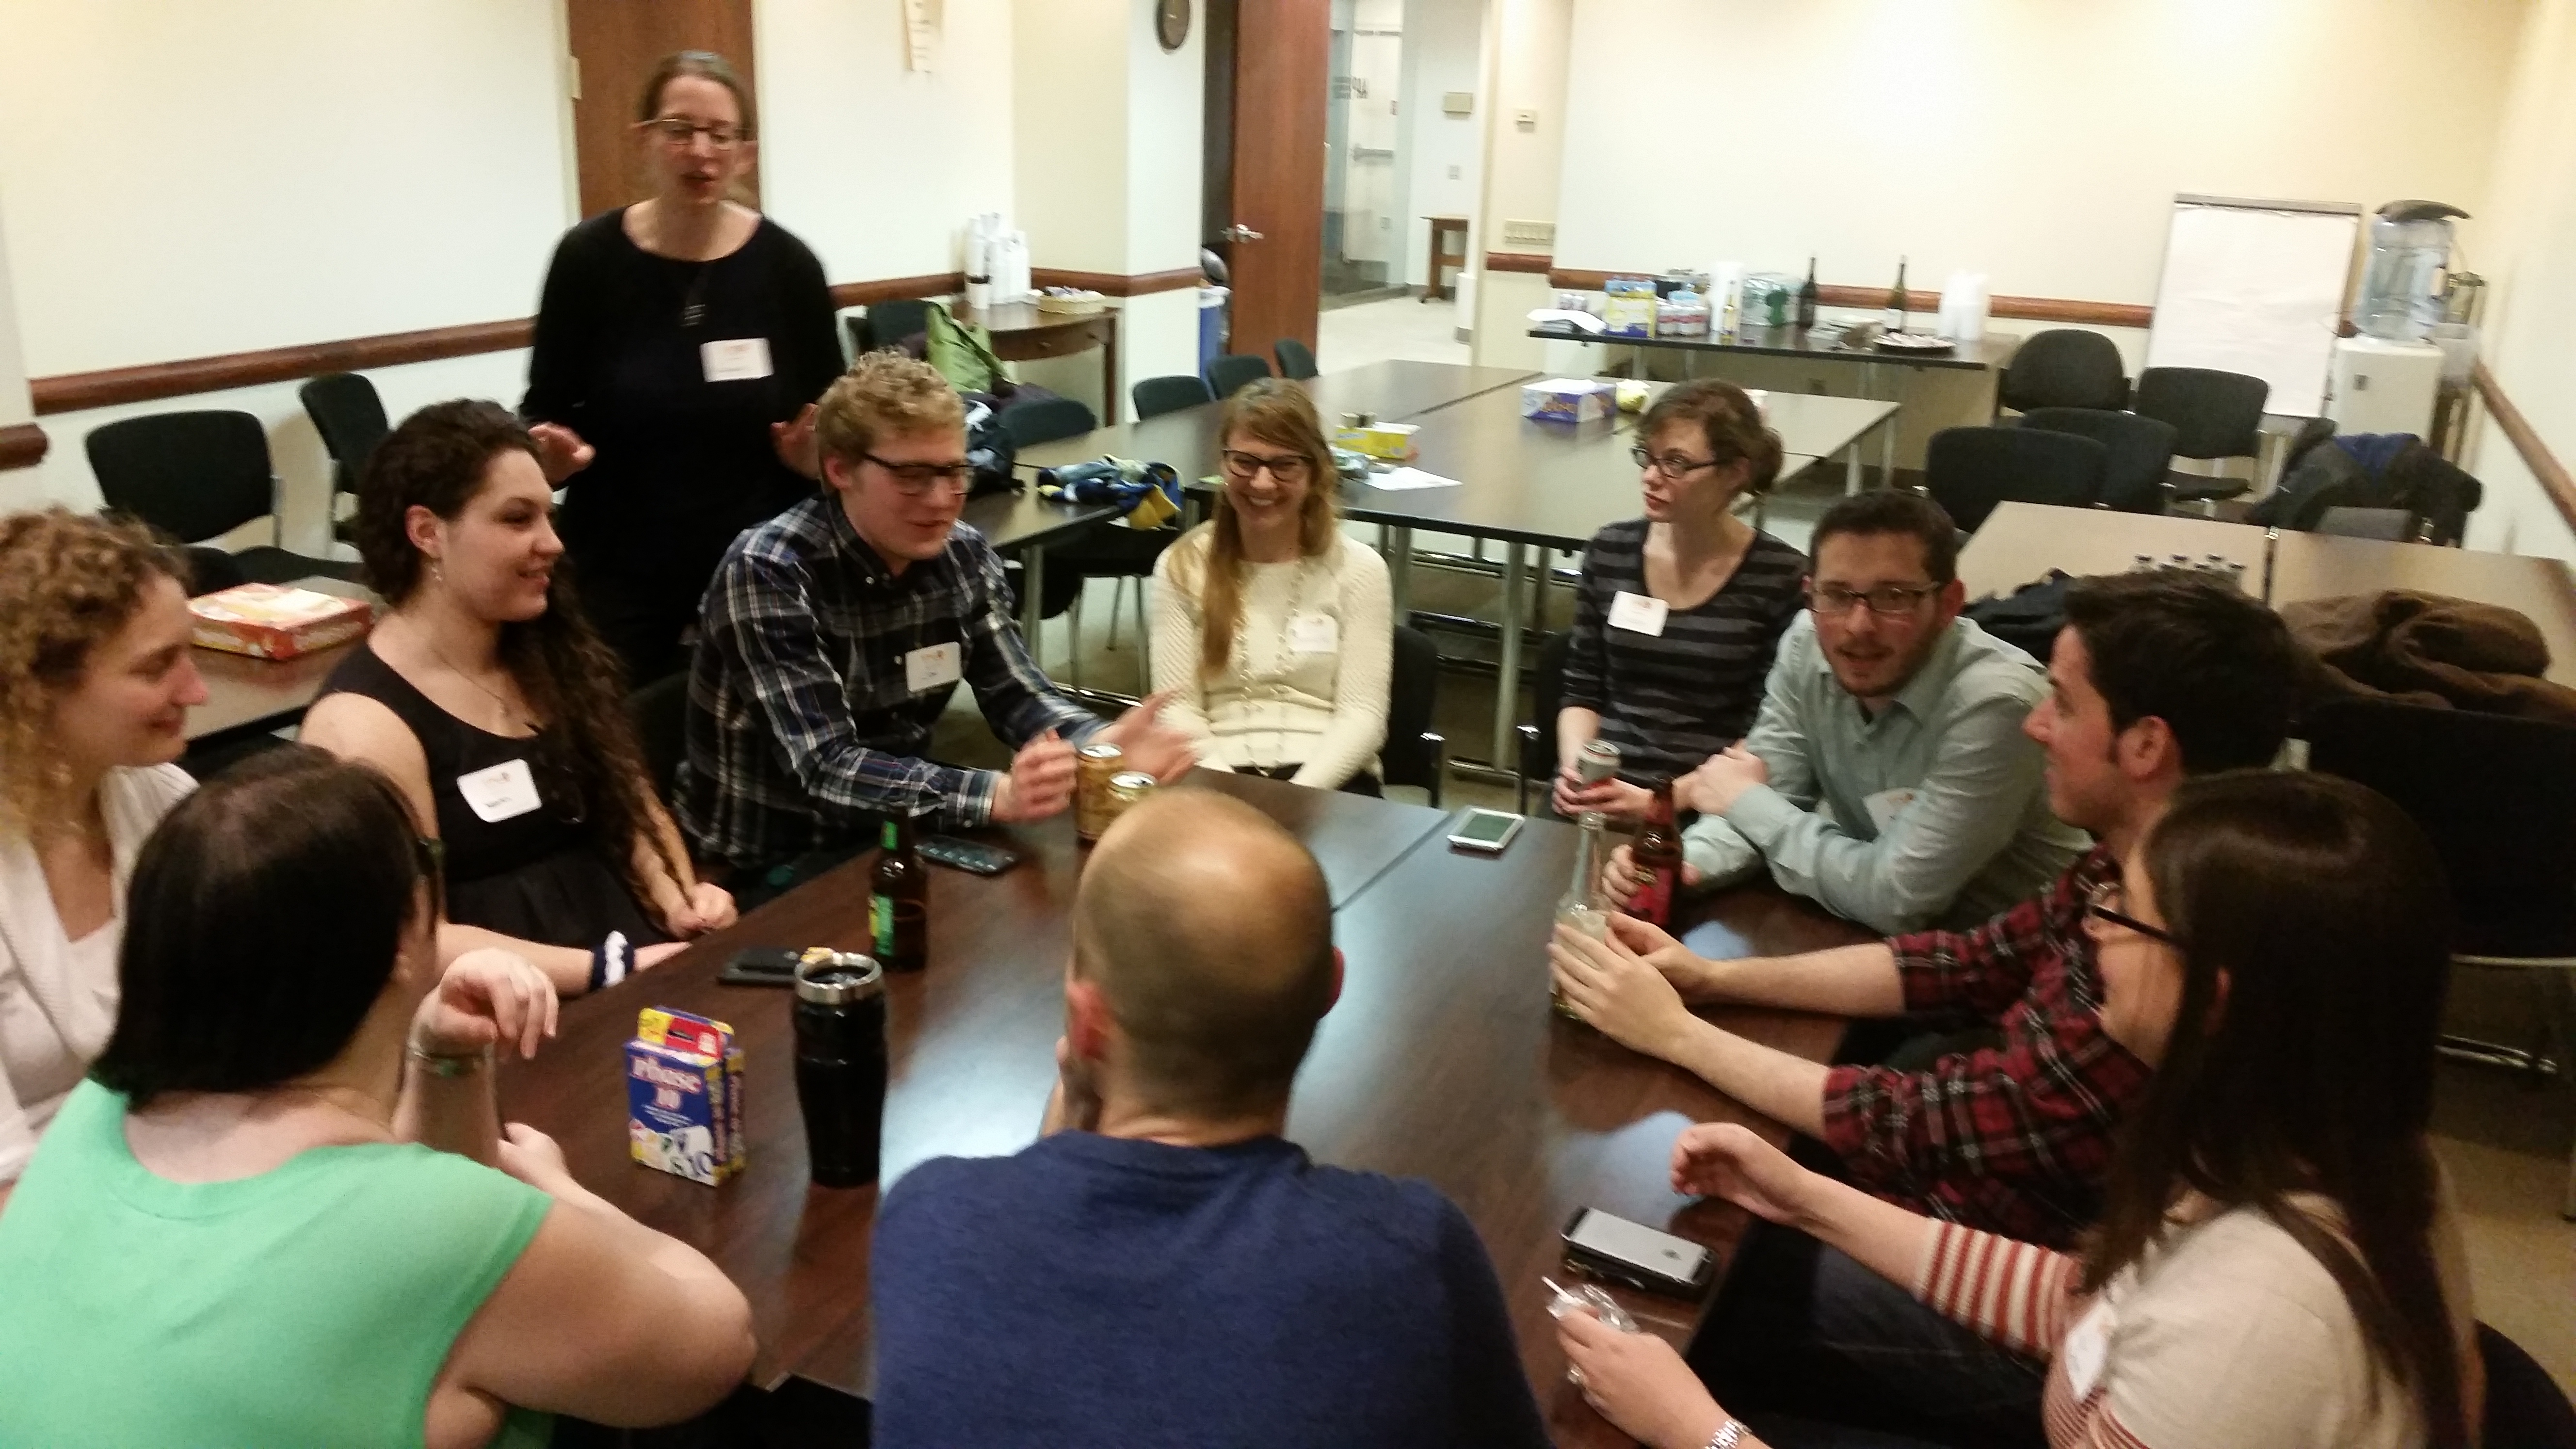 Beer & Board Games Night 2015